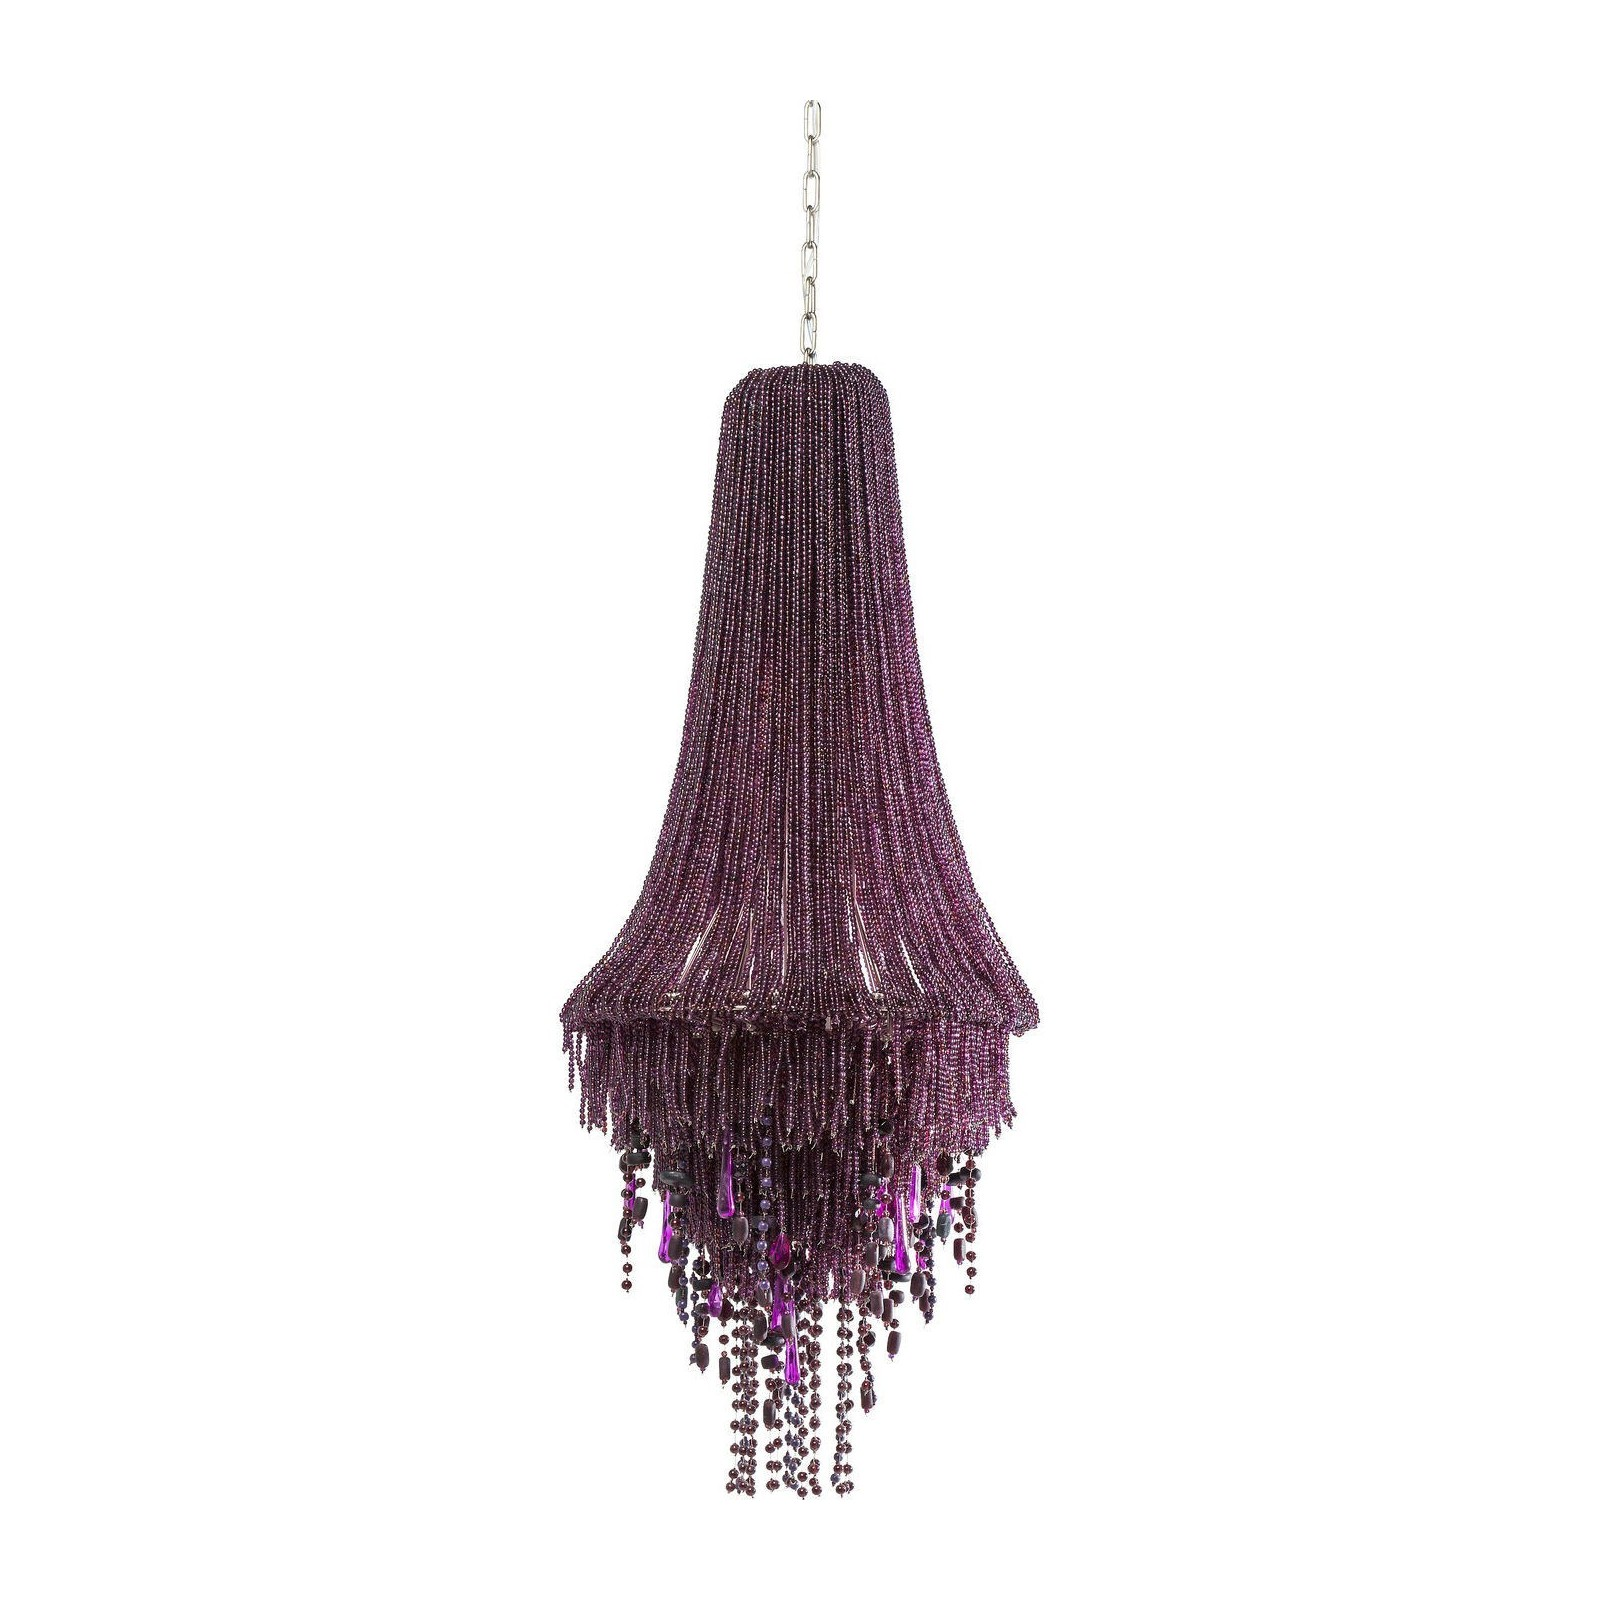 Suspension Design Violette Lila Medusa Luminaires